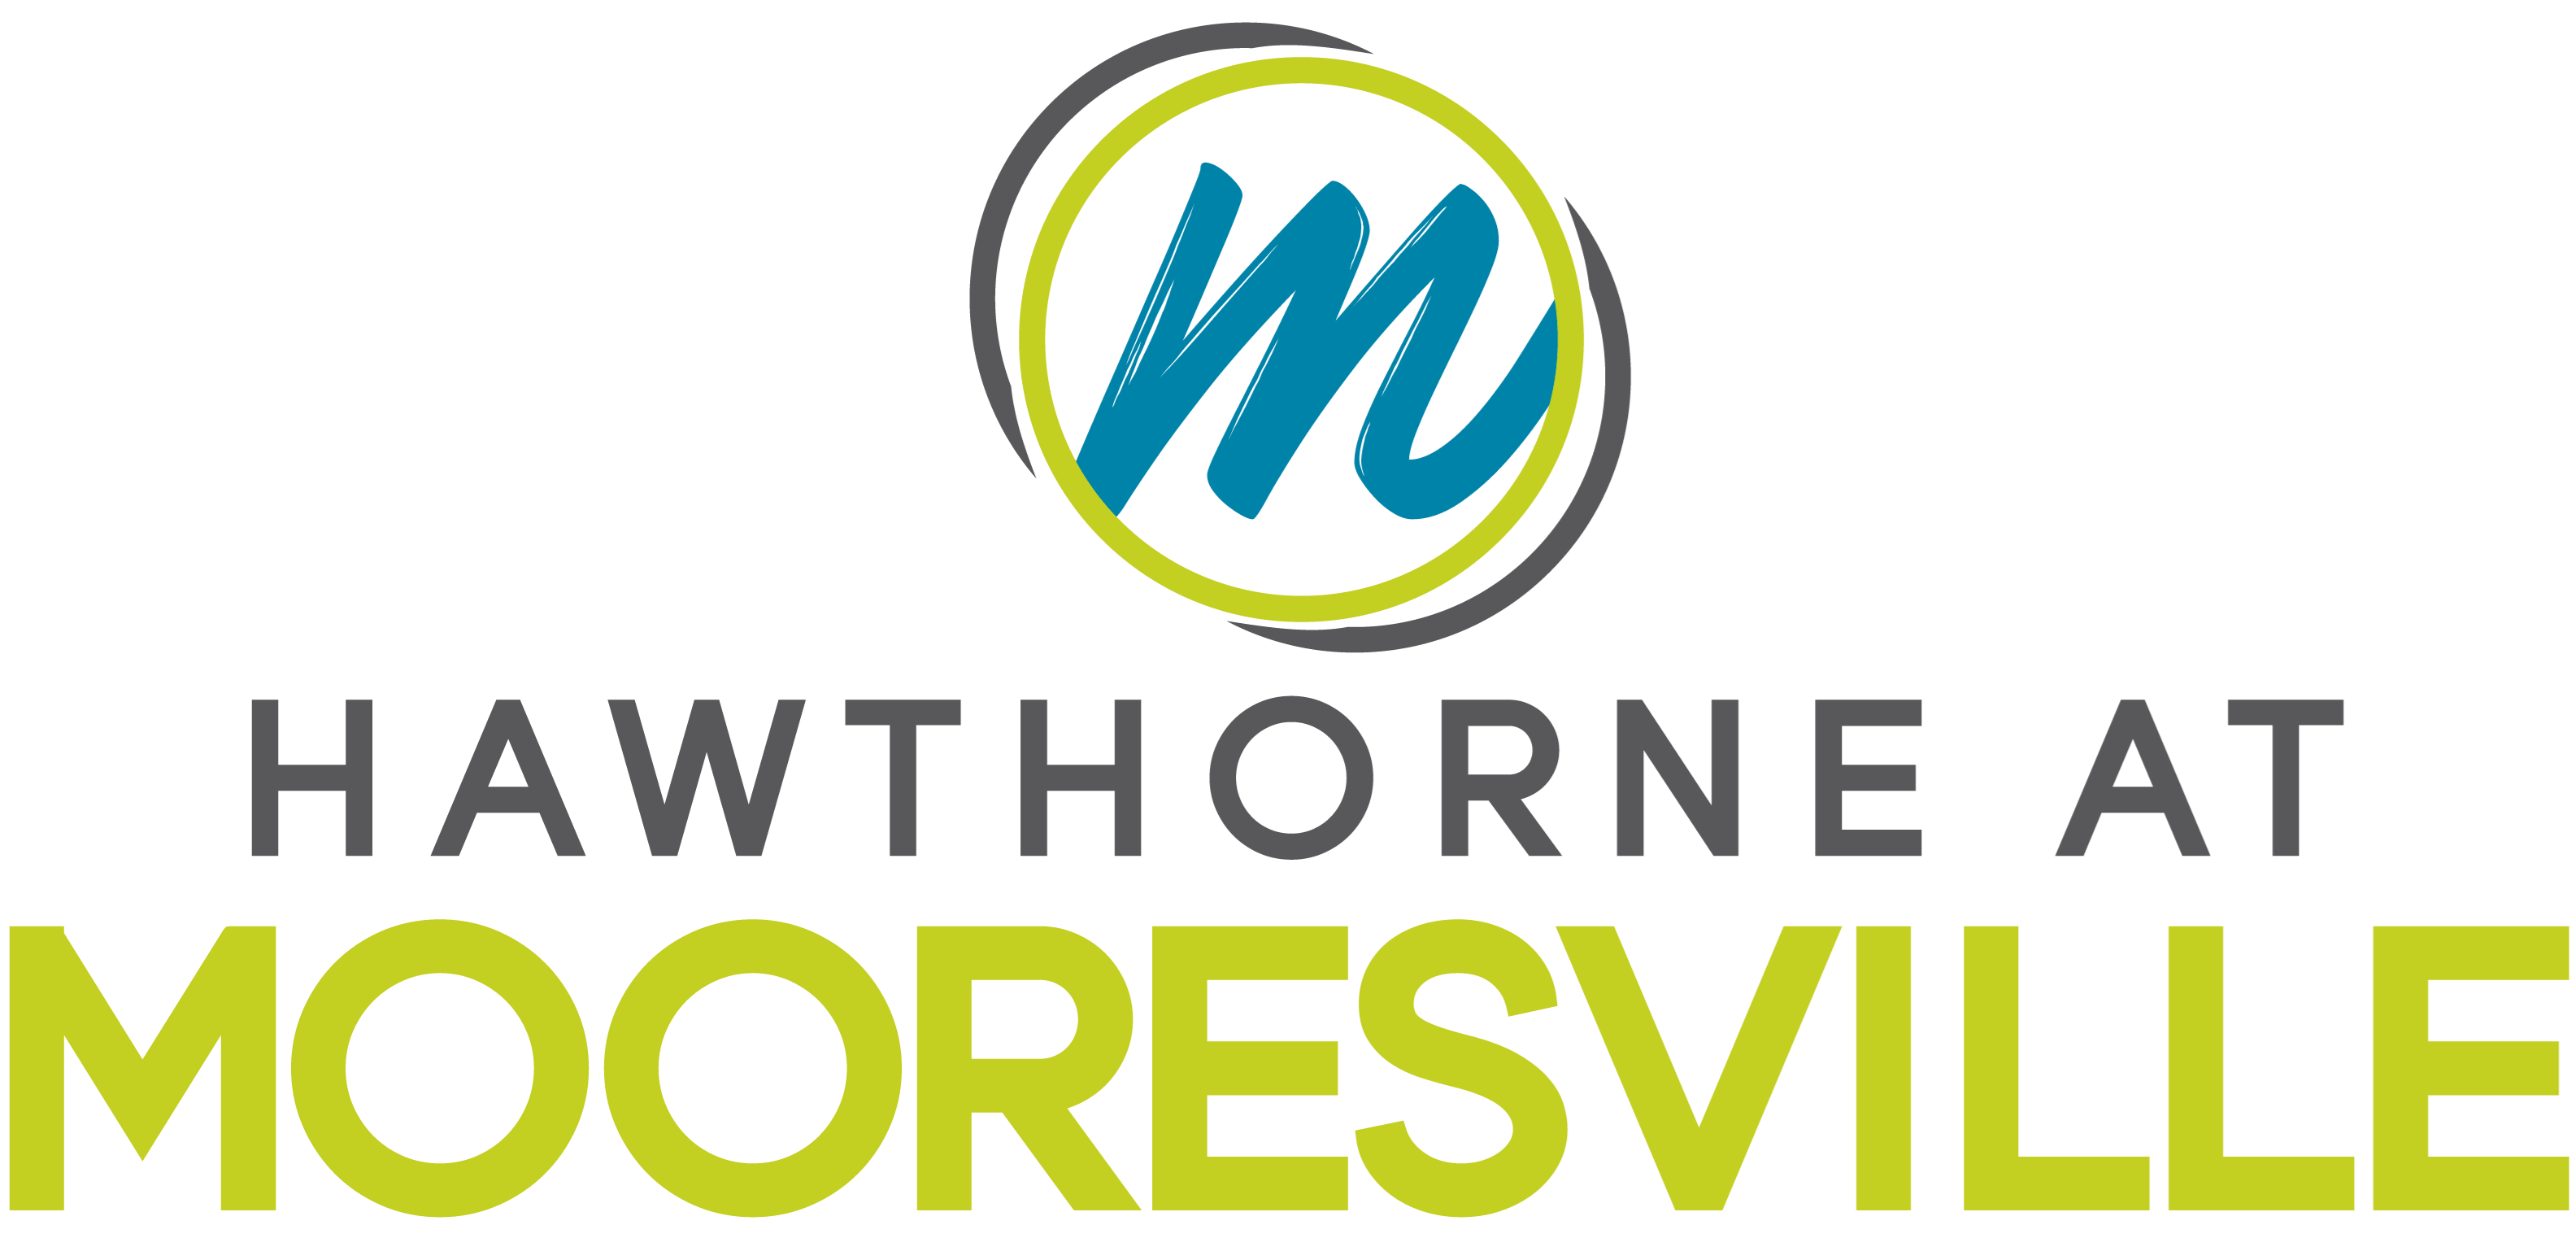 Mooresville Property Logo 28